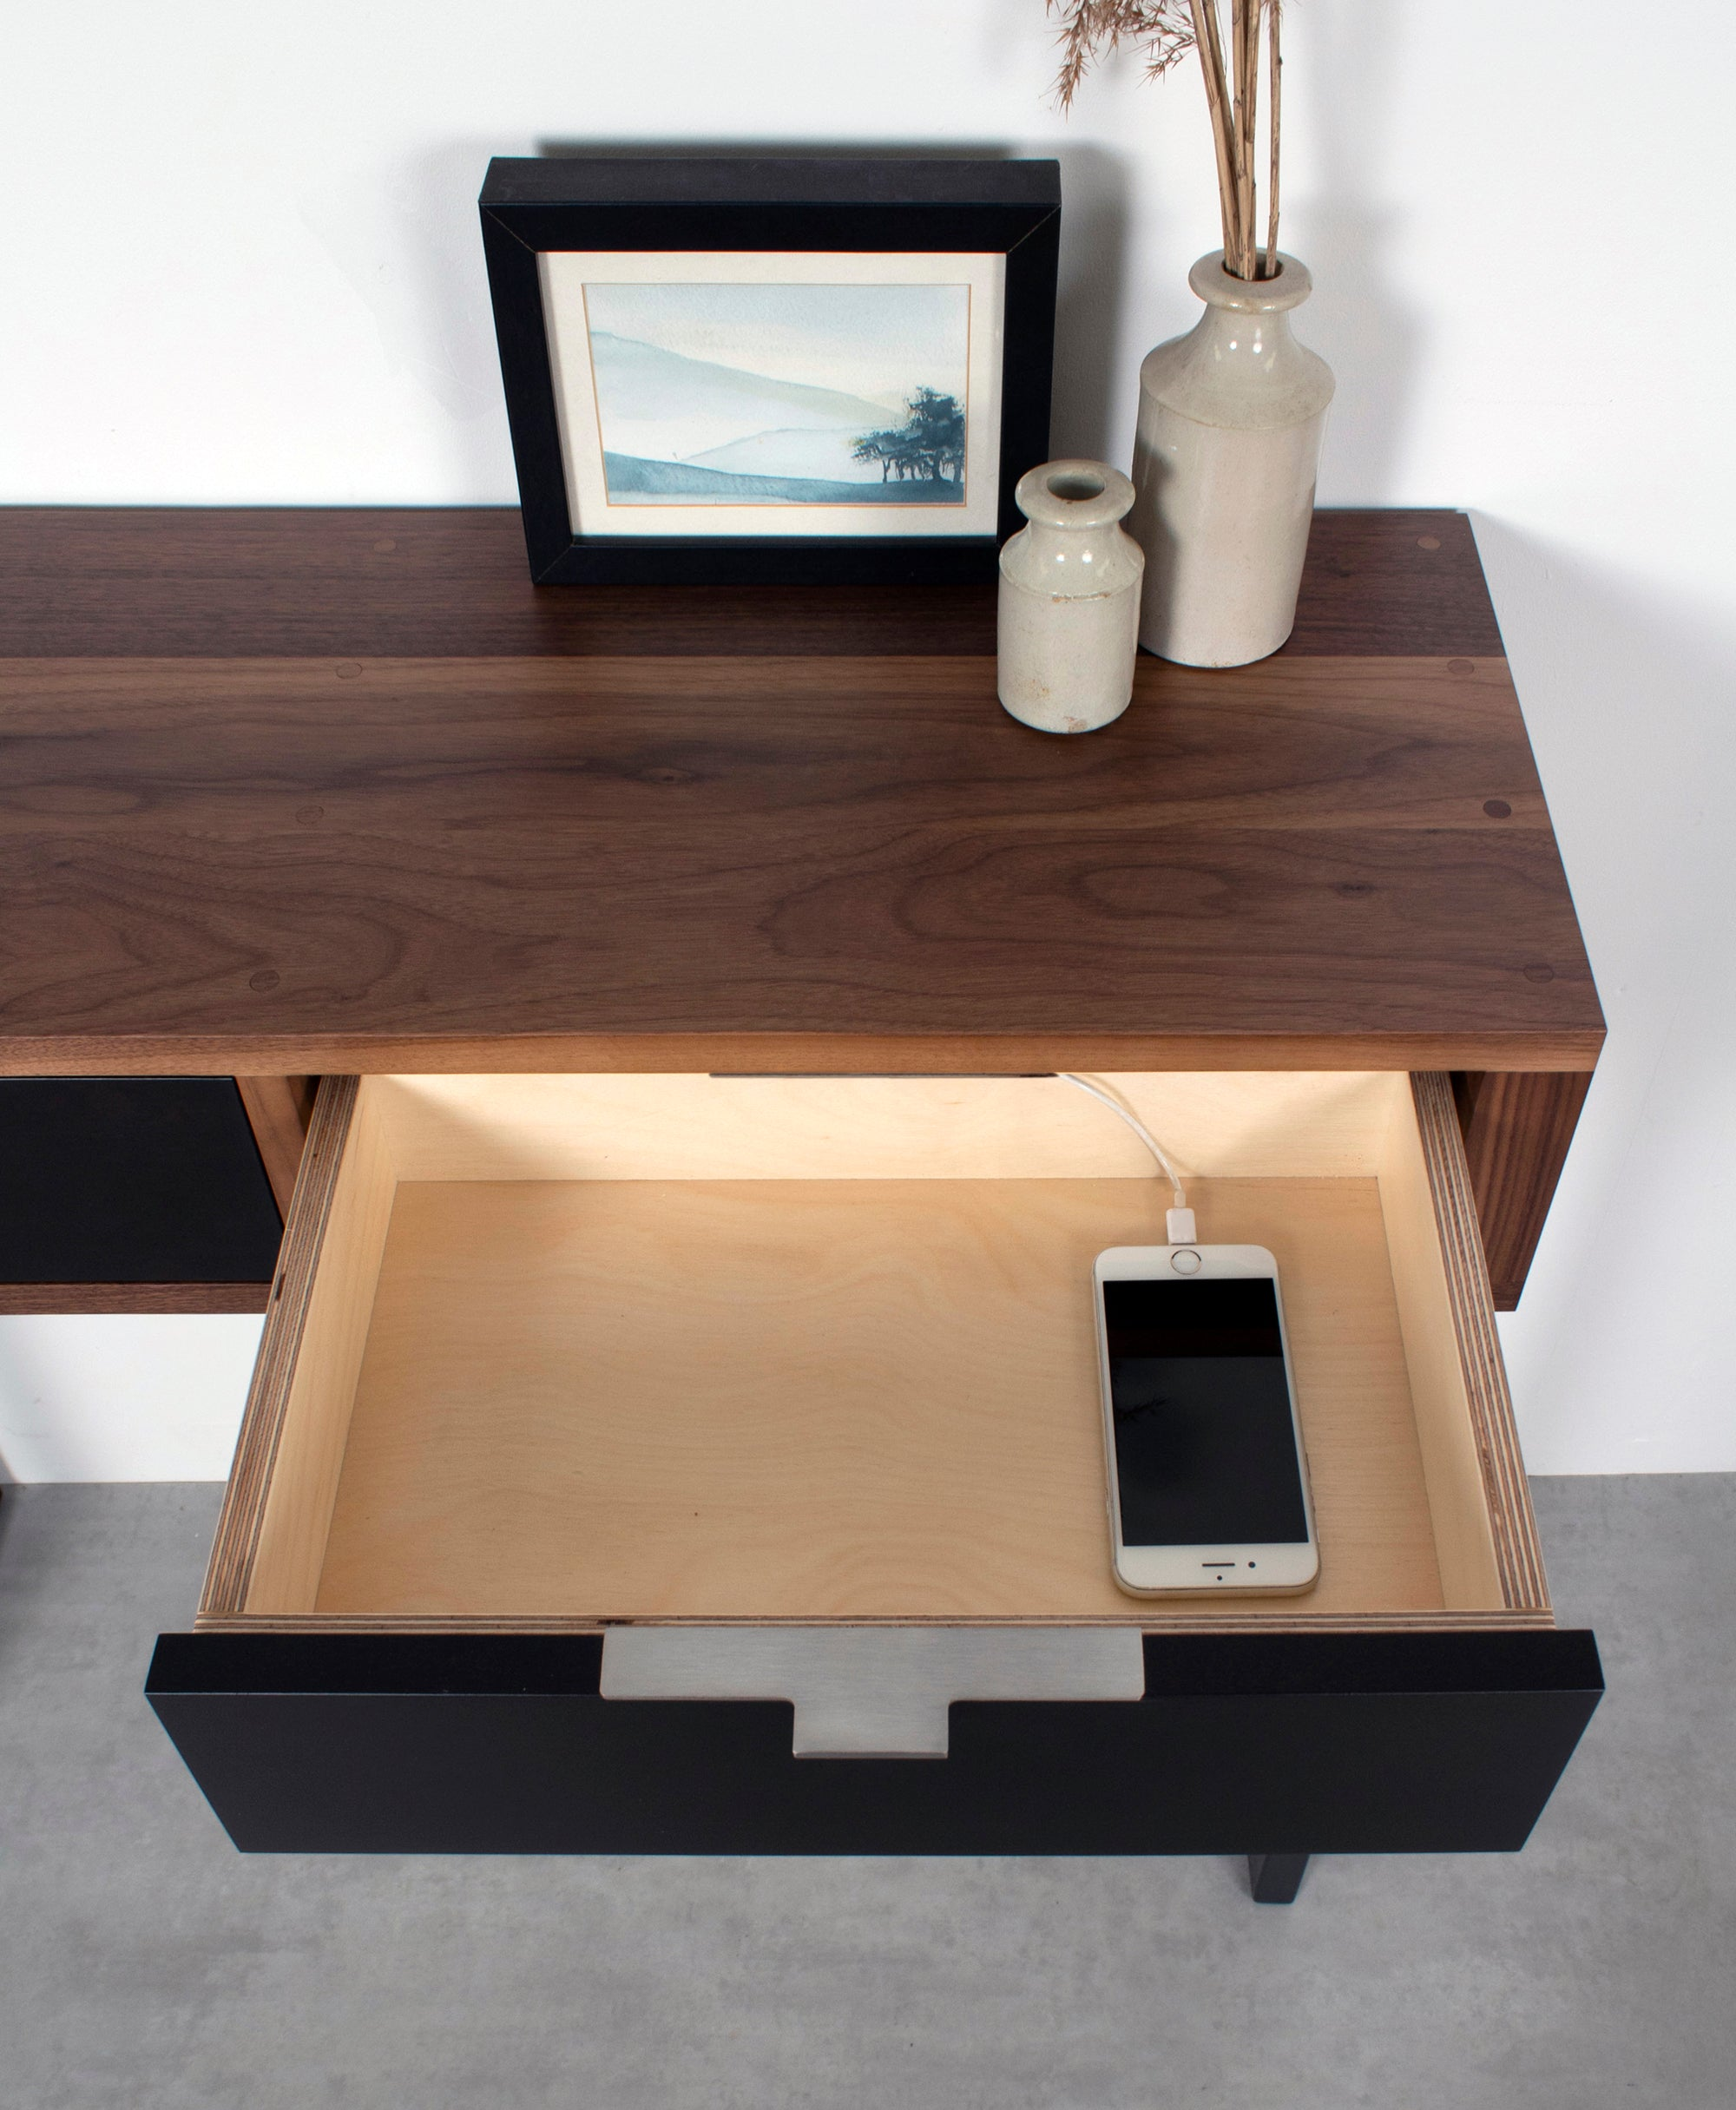 Walnut desk with drawers for chargers